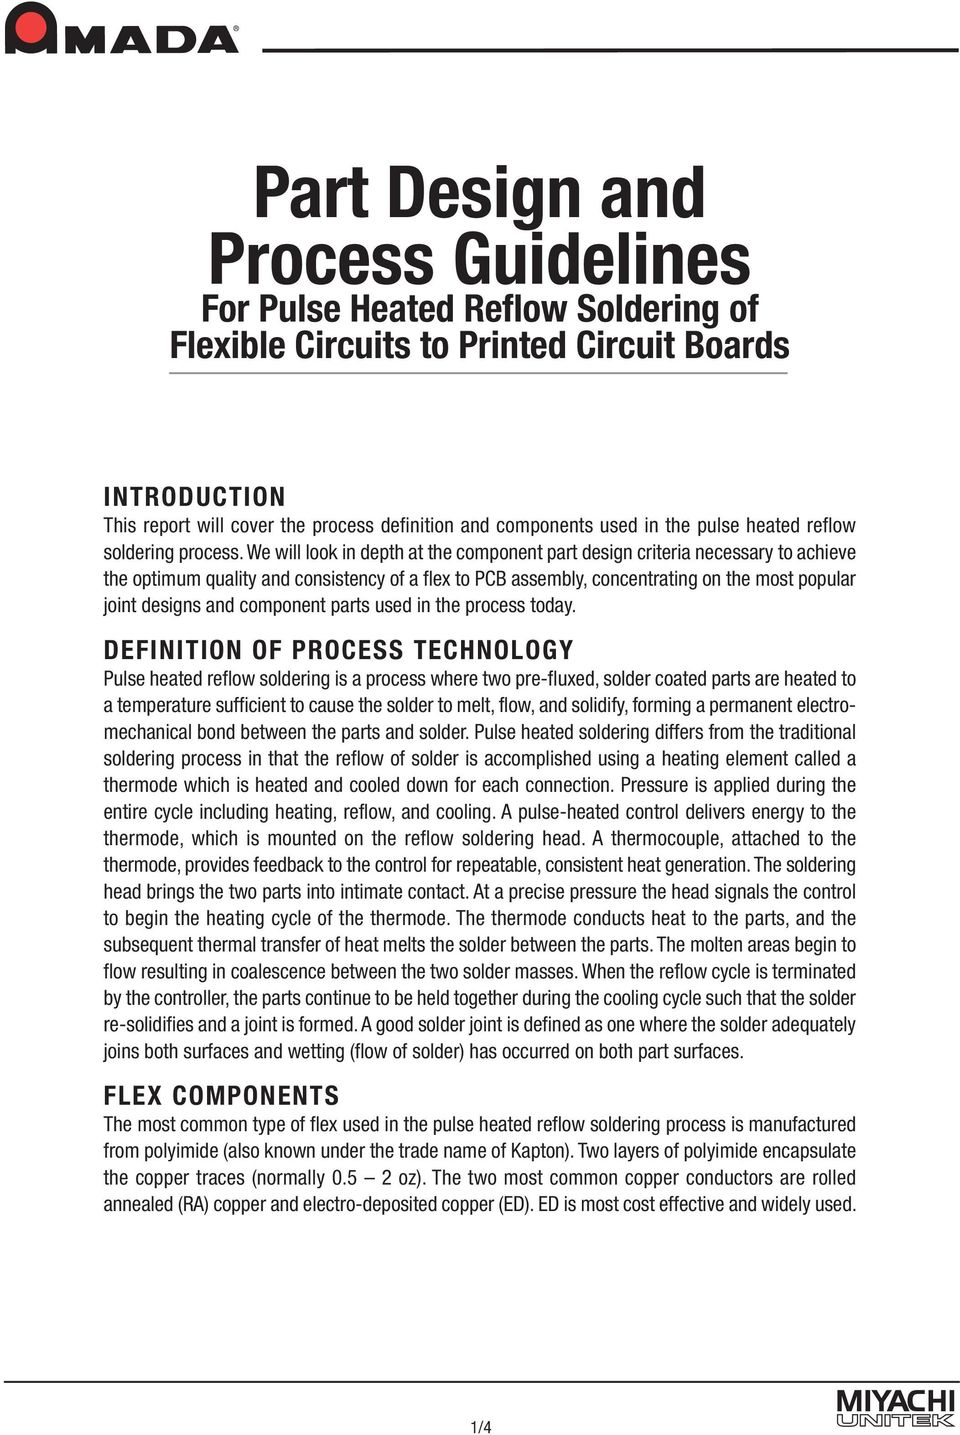 Part Design And Process Guidelines Pdf Flex Rigid Circuit Boards Electro Plate Circuitry Dragon We Will Look In Depth At The Component Criteria Necessary To Achieve Optimum